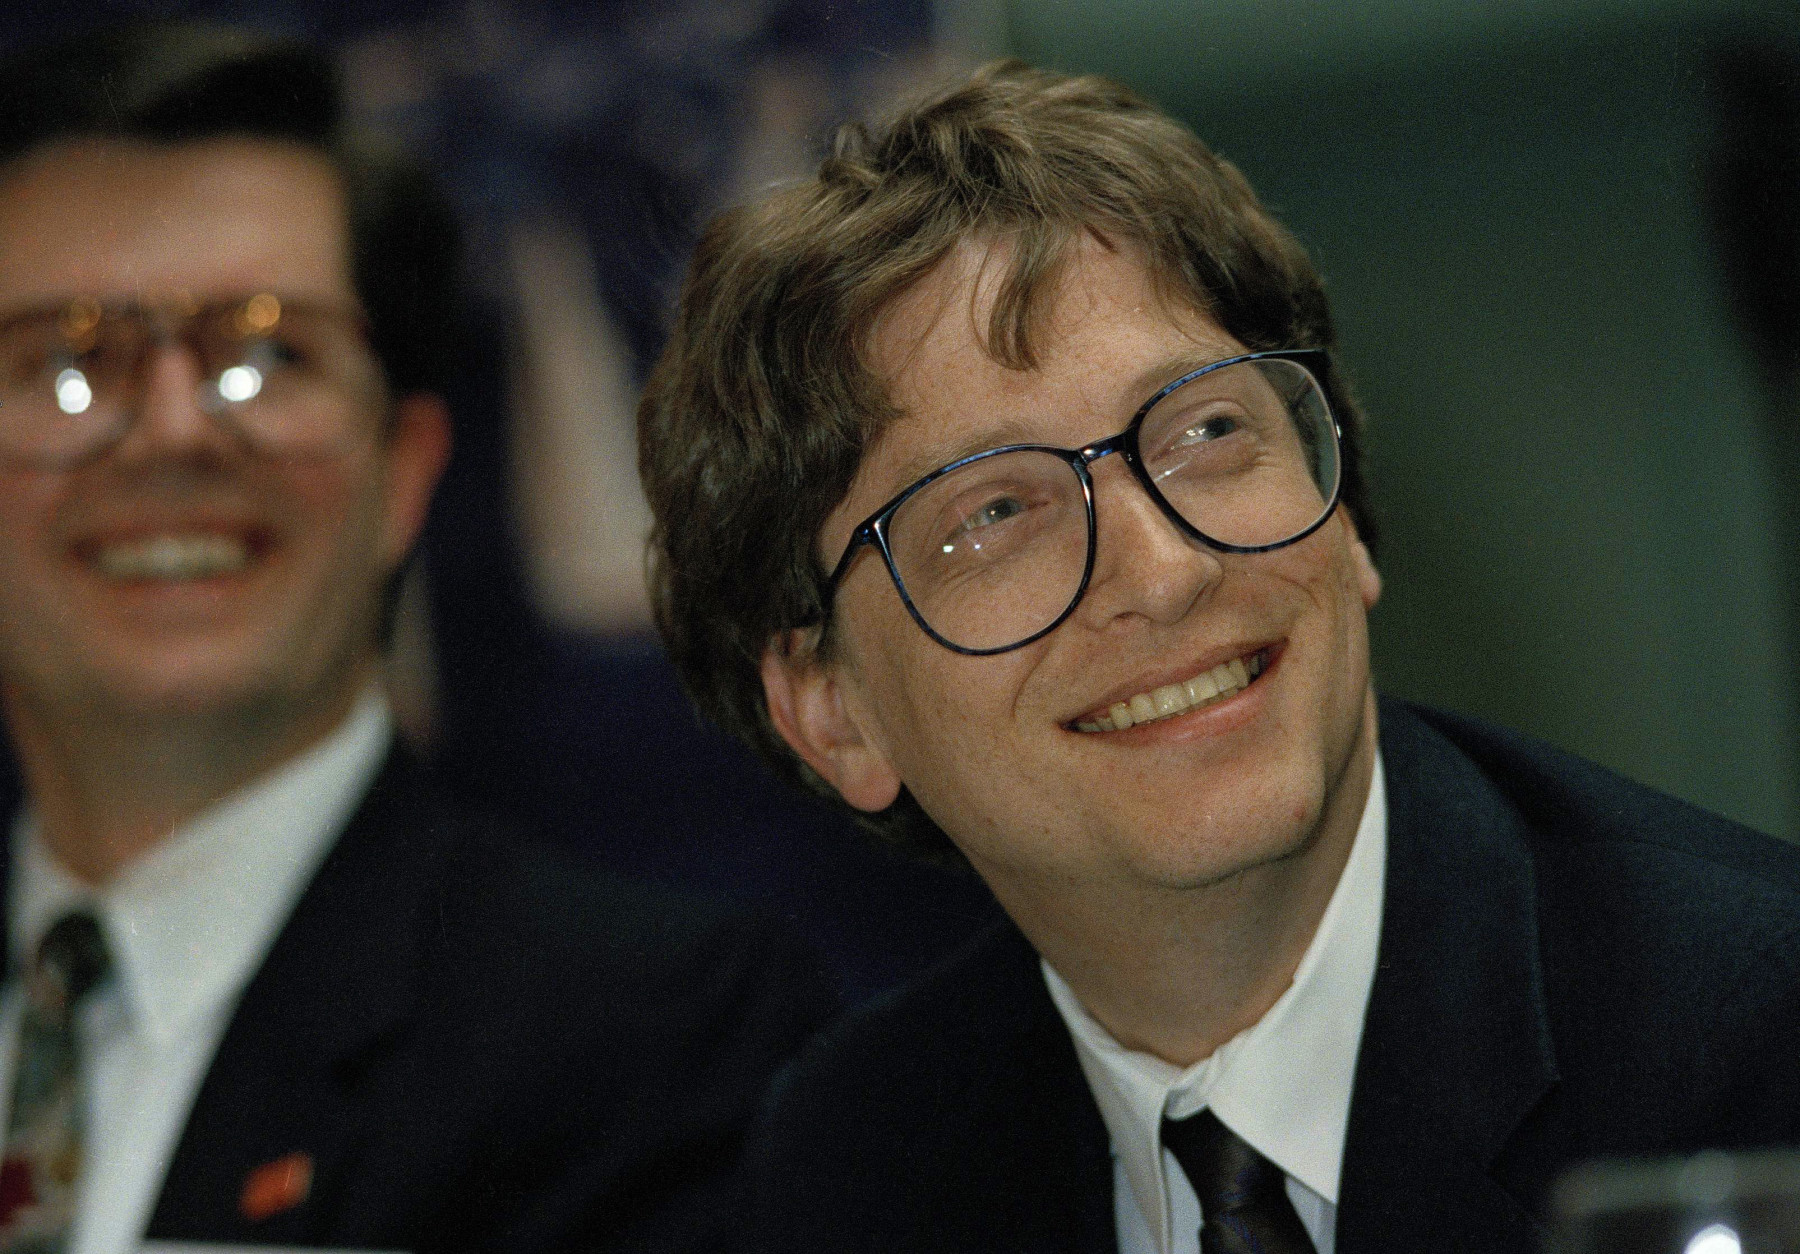 Bill Gates, right, chairman and founder of Microsoft Corp., watches a video presentation prior to giving the keynote address at the annual meeting of the Washington Software Association in Seattle, Wash., Jan. 28, 1992. Looking on is Paul Grey, president of Softchec, Inc. of Kirkland, Wash. (AP Photo/Jim Davidson)